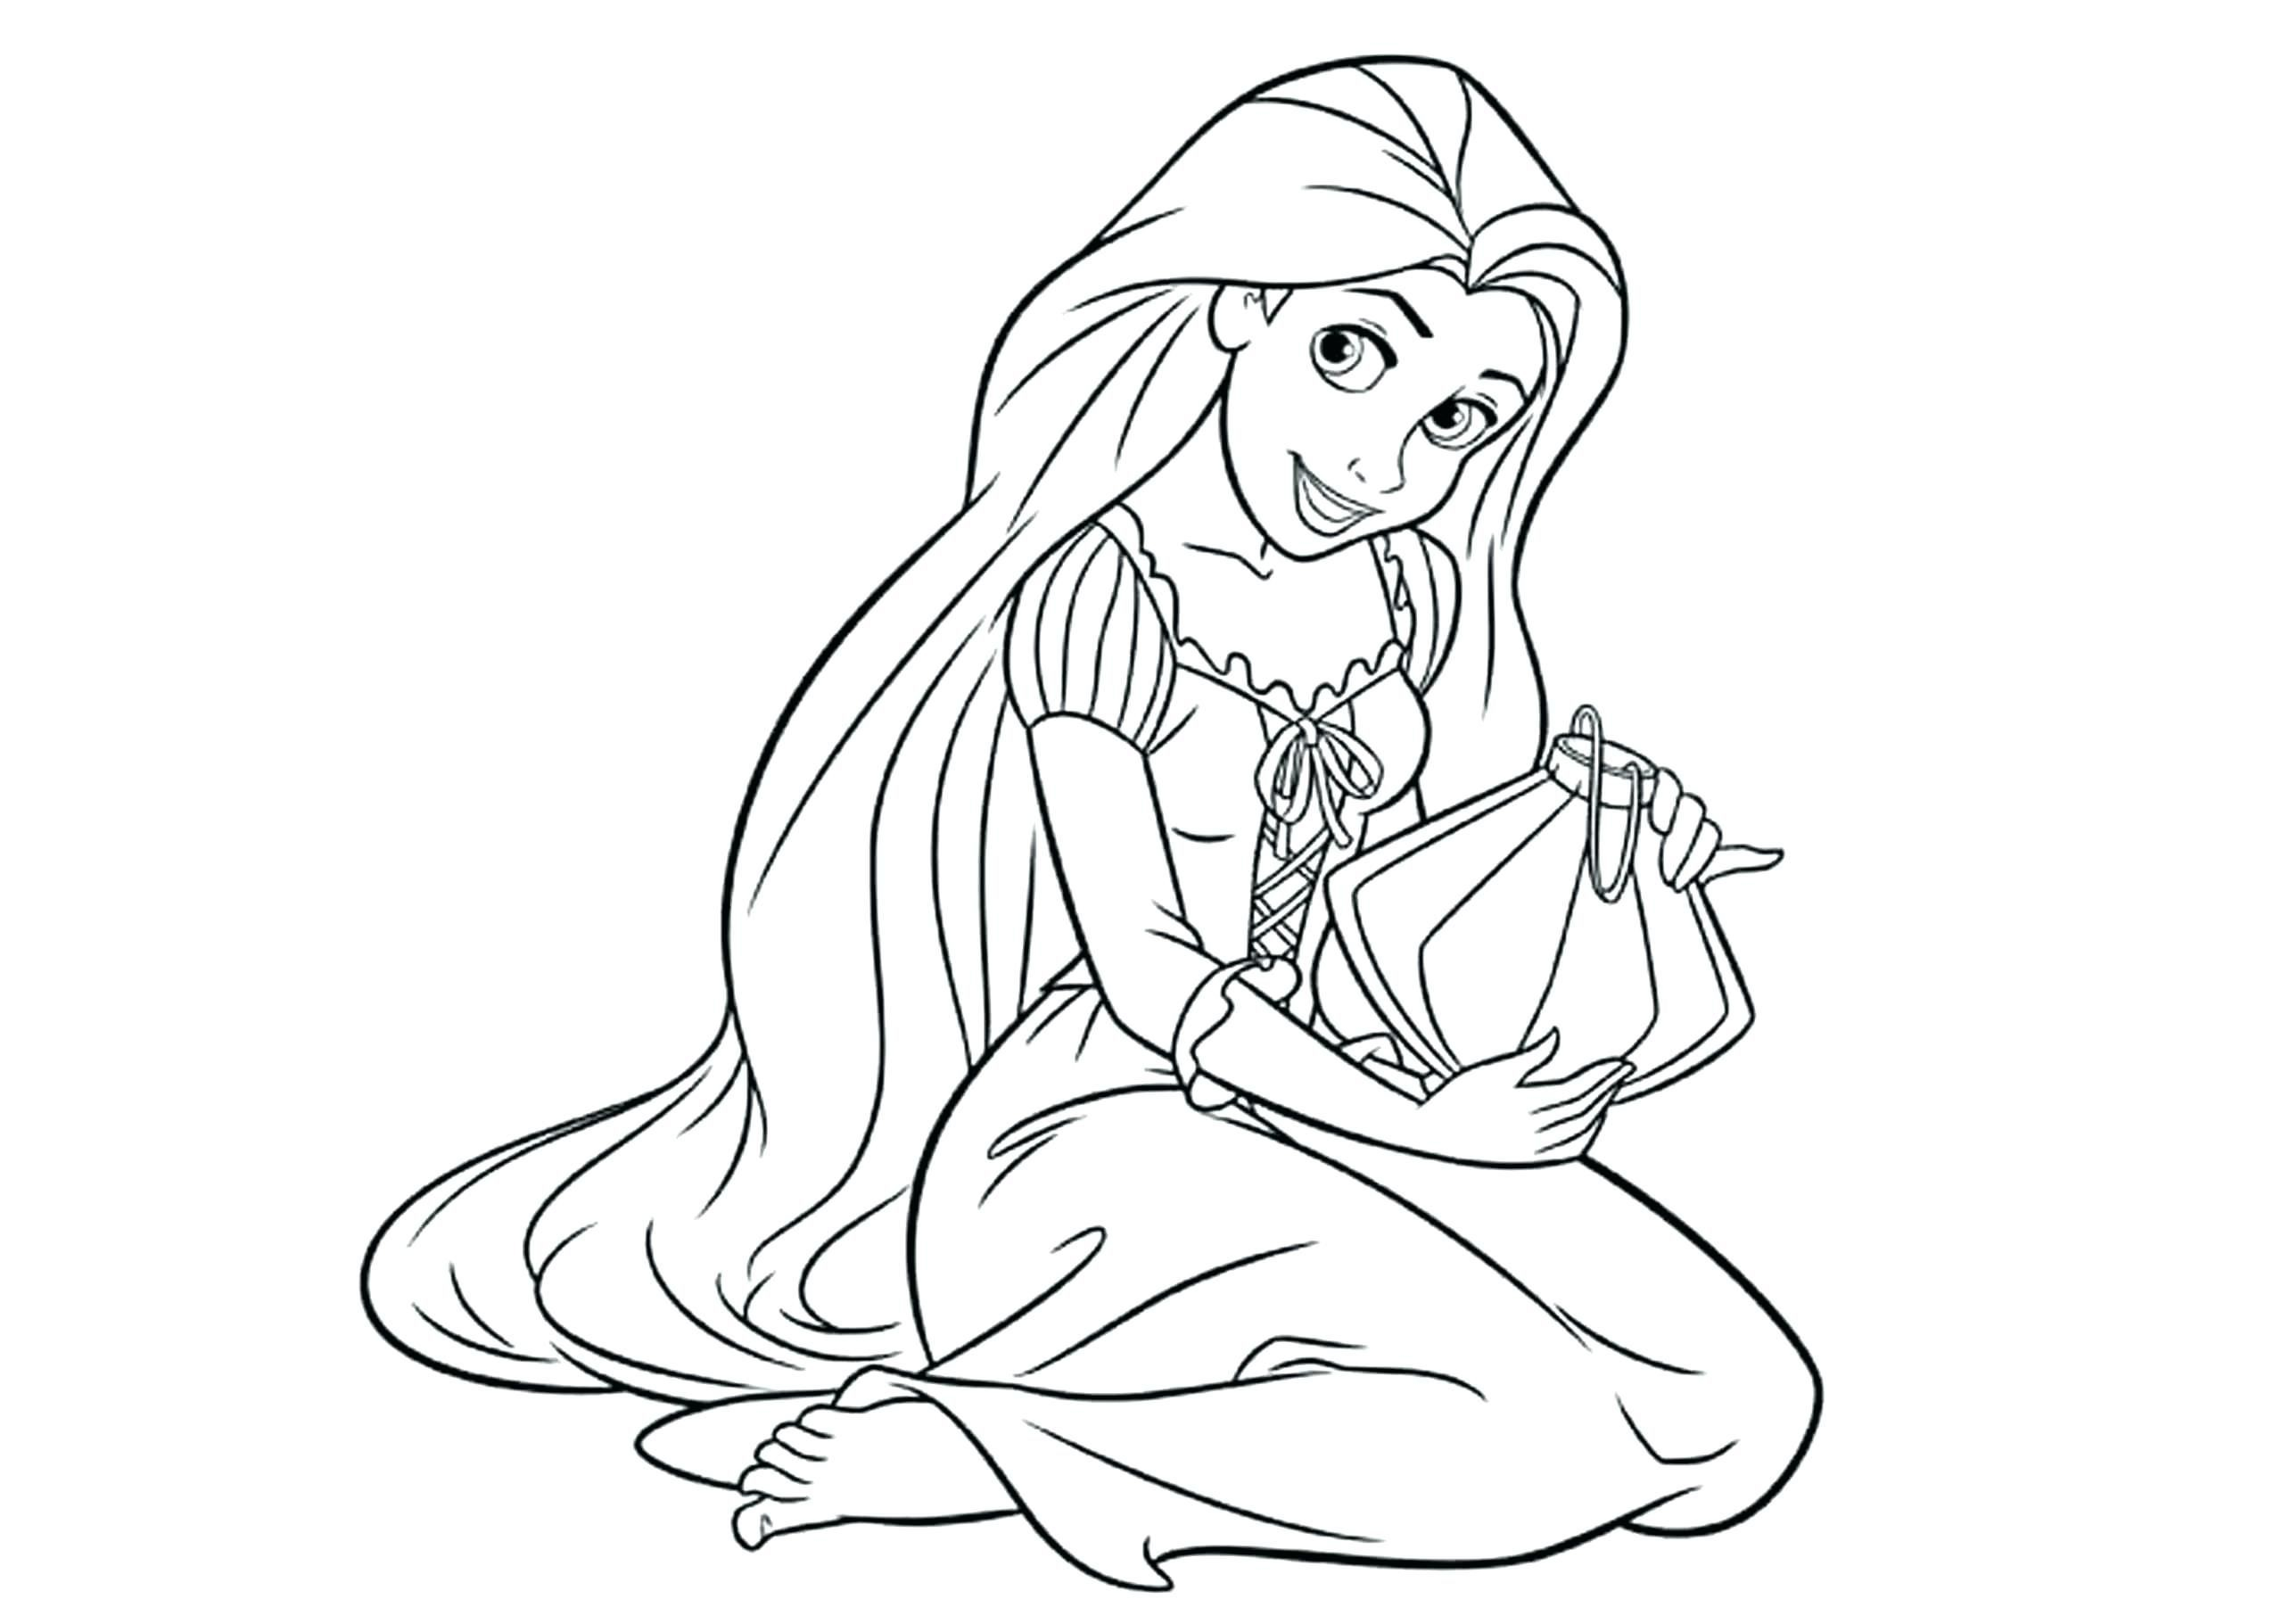 Coloring Pages : Preschool Princess Coloring Sheets - Free Printable Princess Coloring Pages